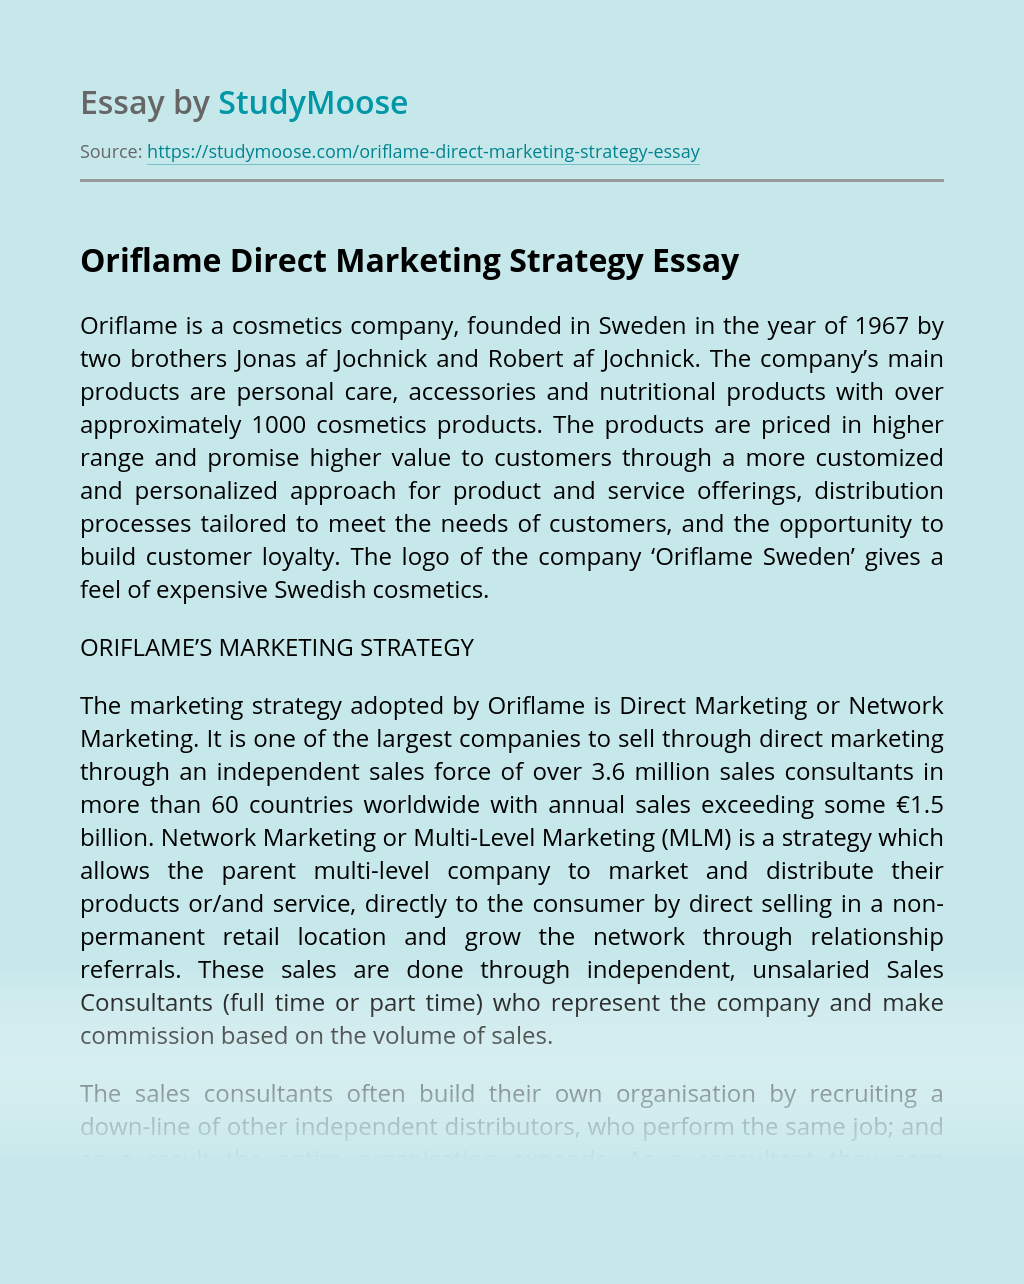 Oriflame Direct Marketing Strategy